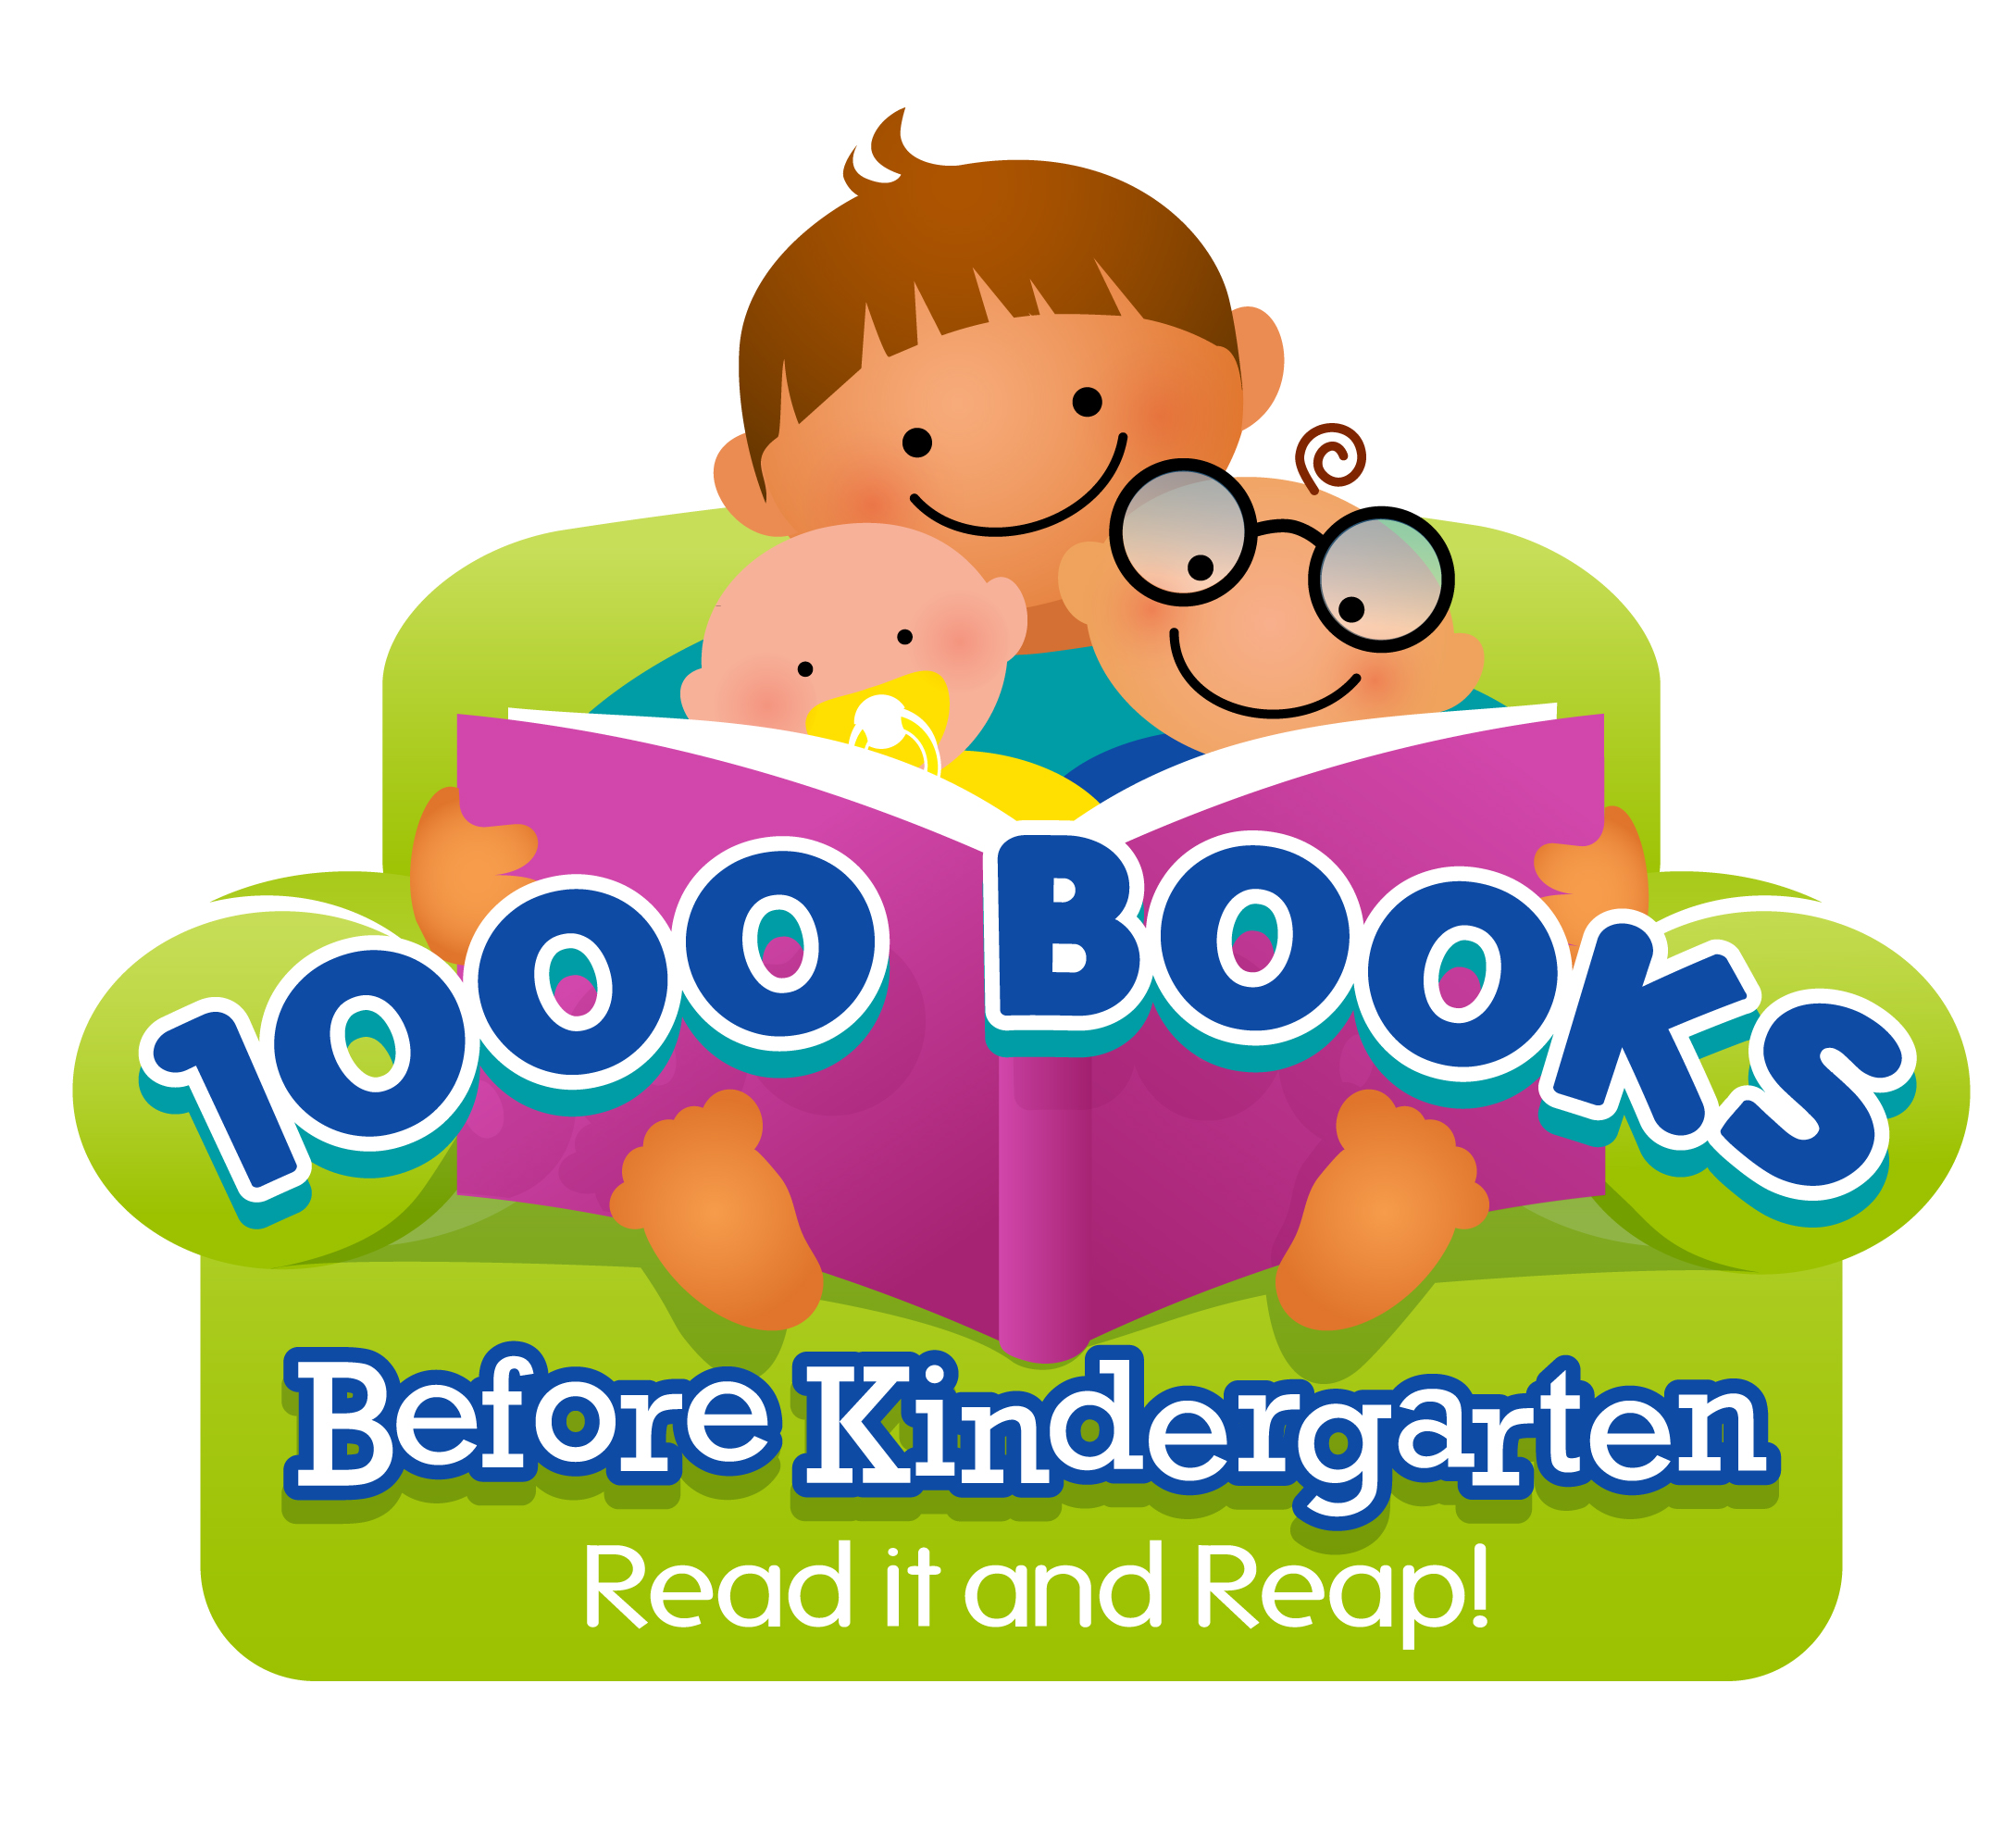 1000 Books Before Kindergarten: Read it and Repeat